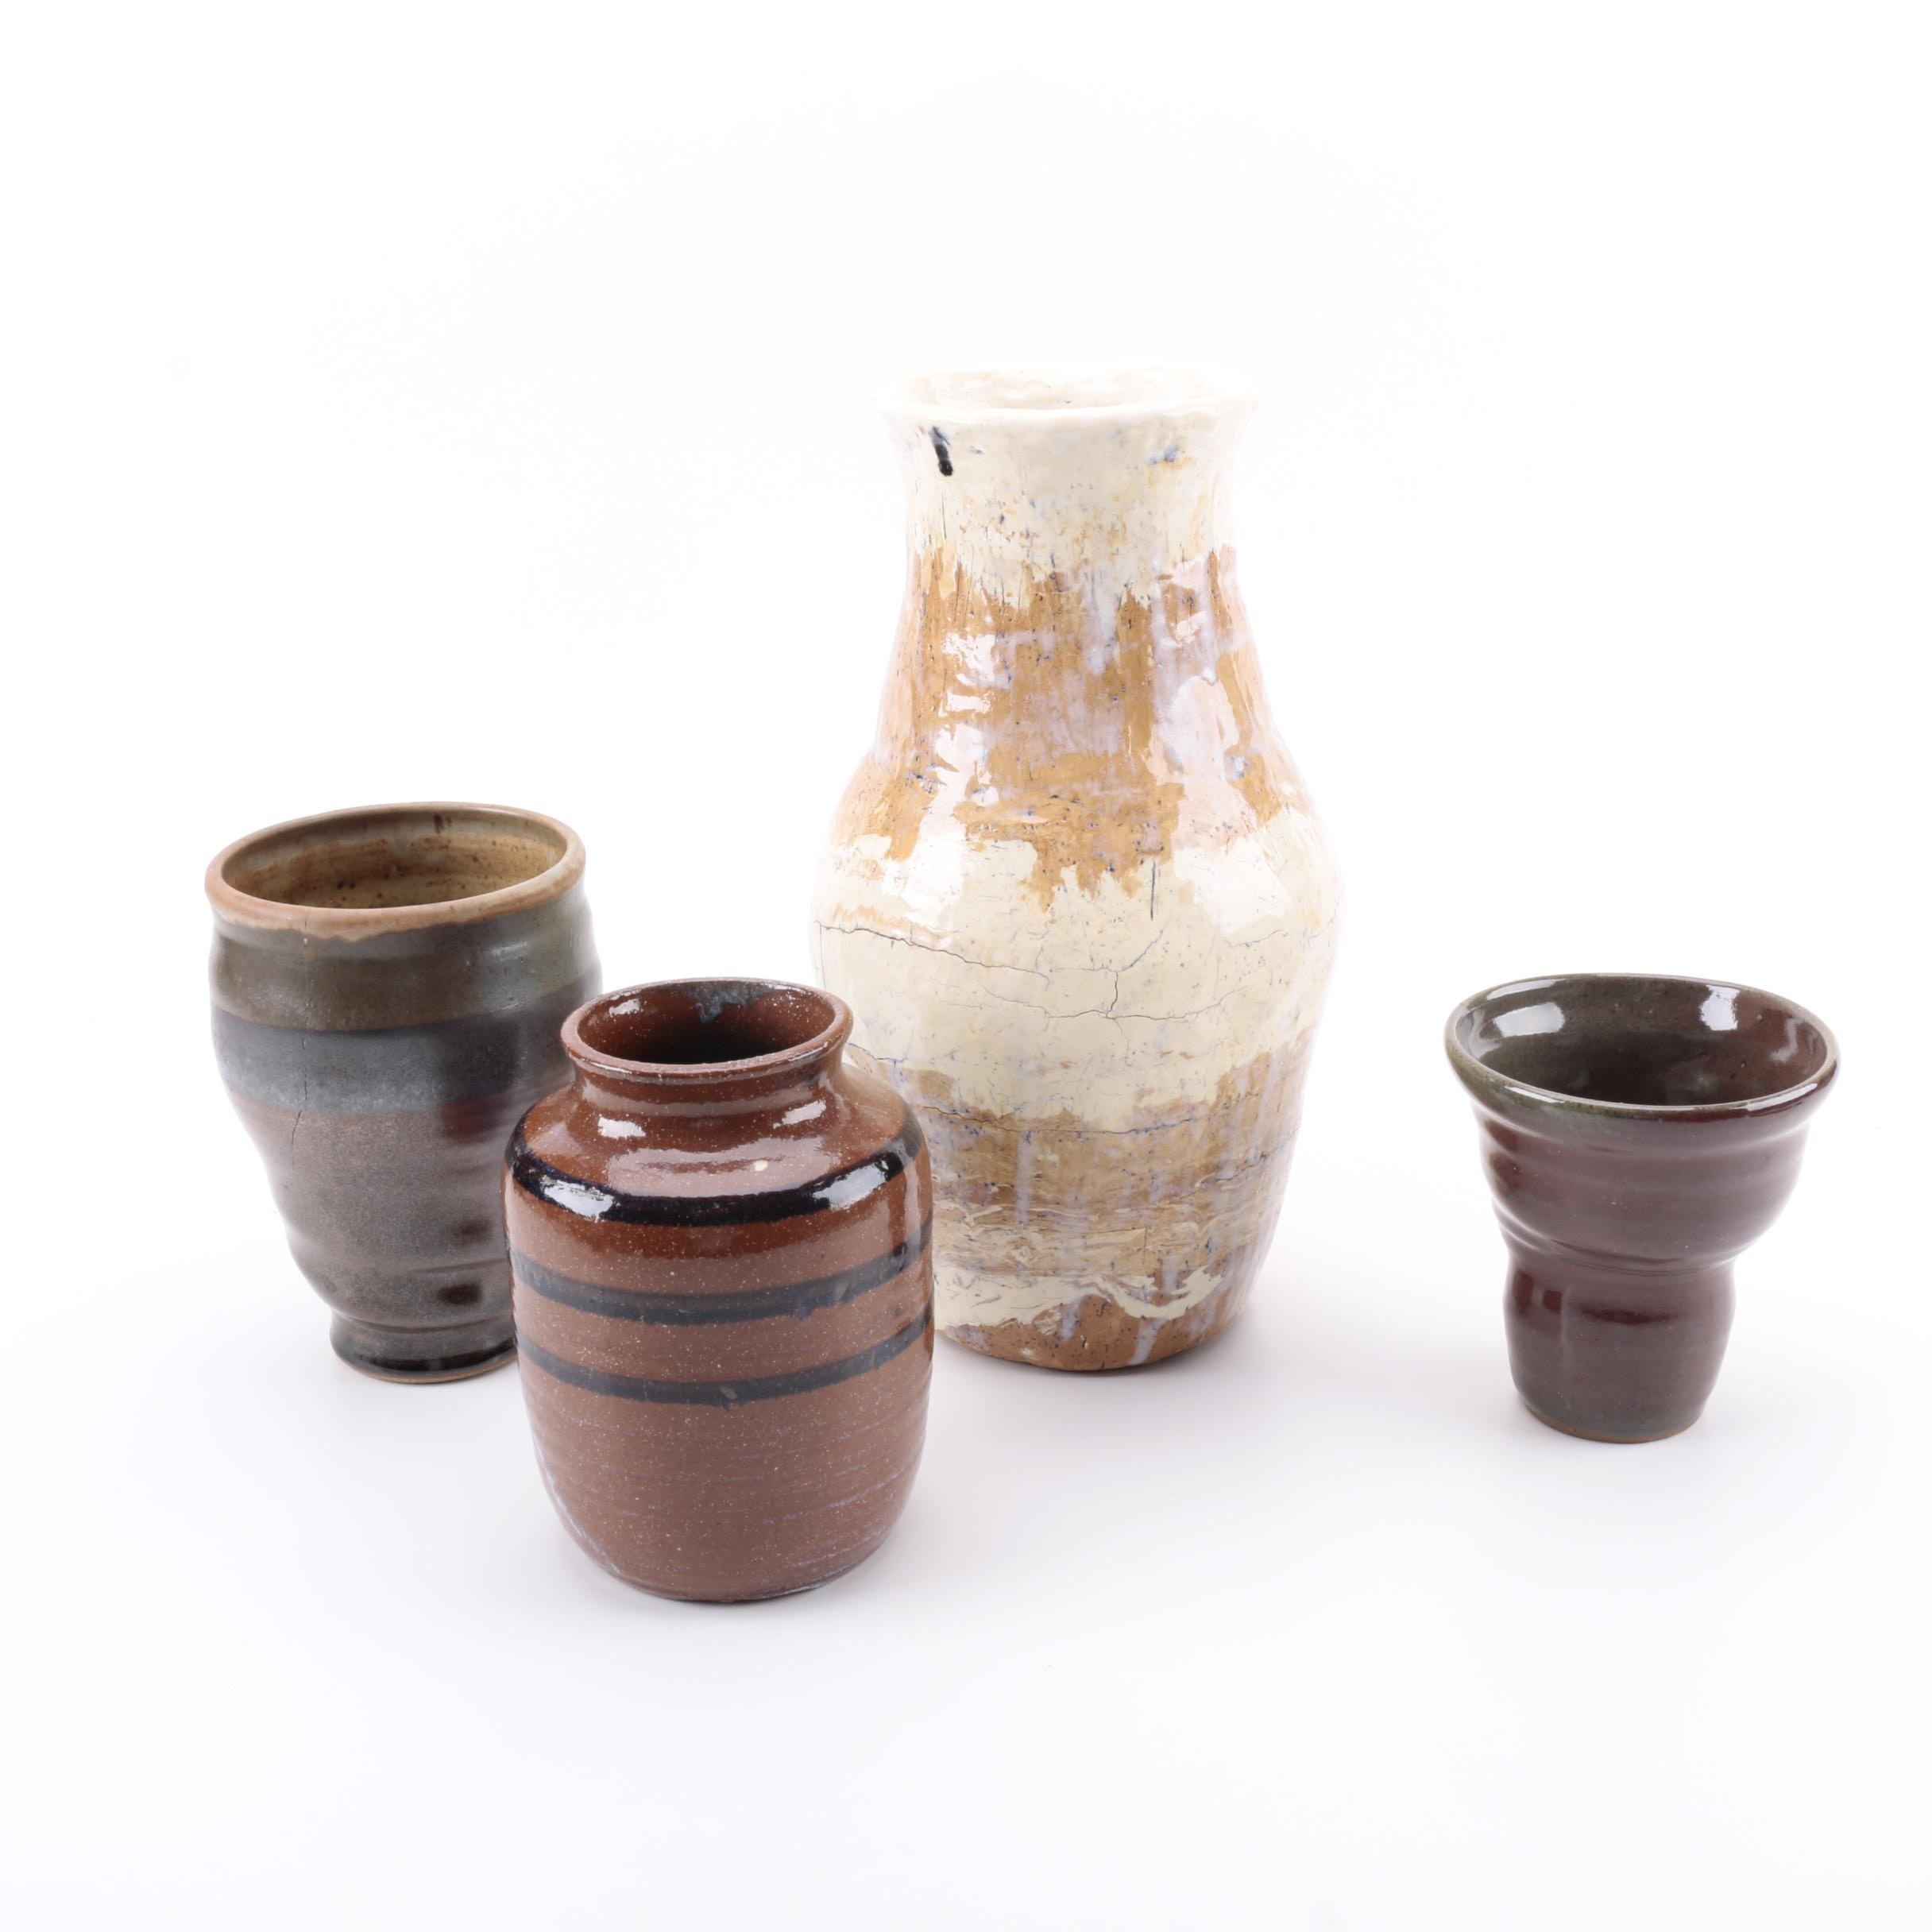 Tom Smith, Veronica DeLay and Deb Harmon Signed Art Pottery Collection